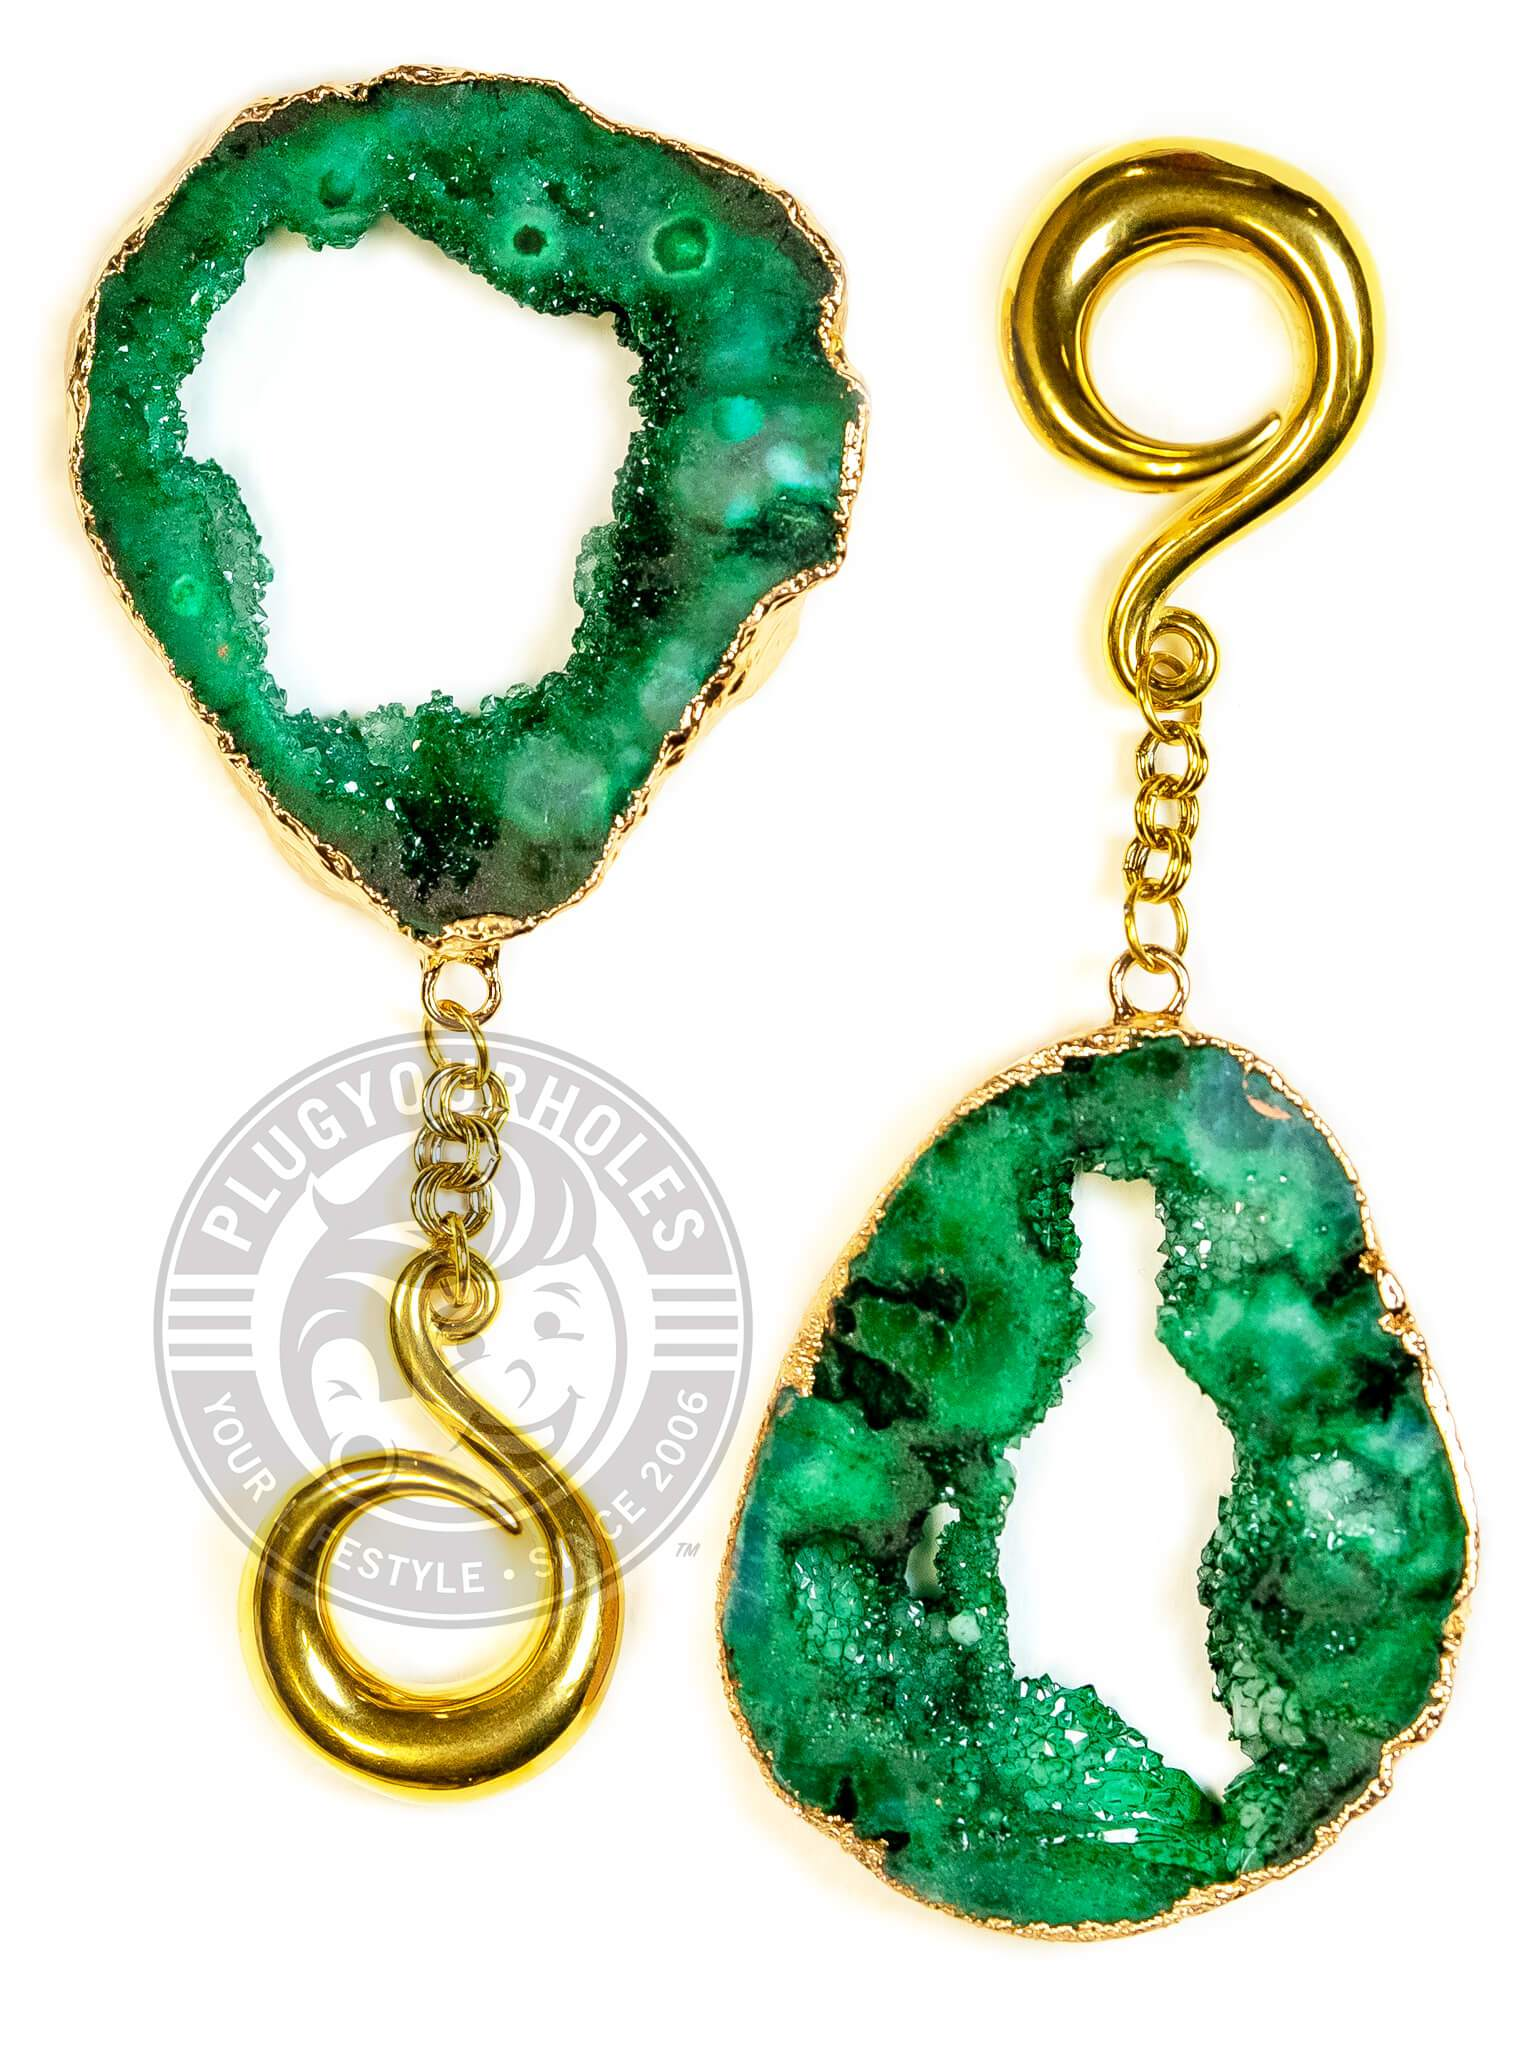 Emerald Green Crystalized Geode Slice Gold Curled Hook Hangers